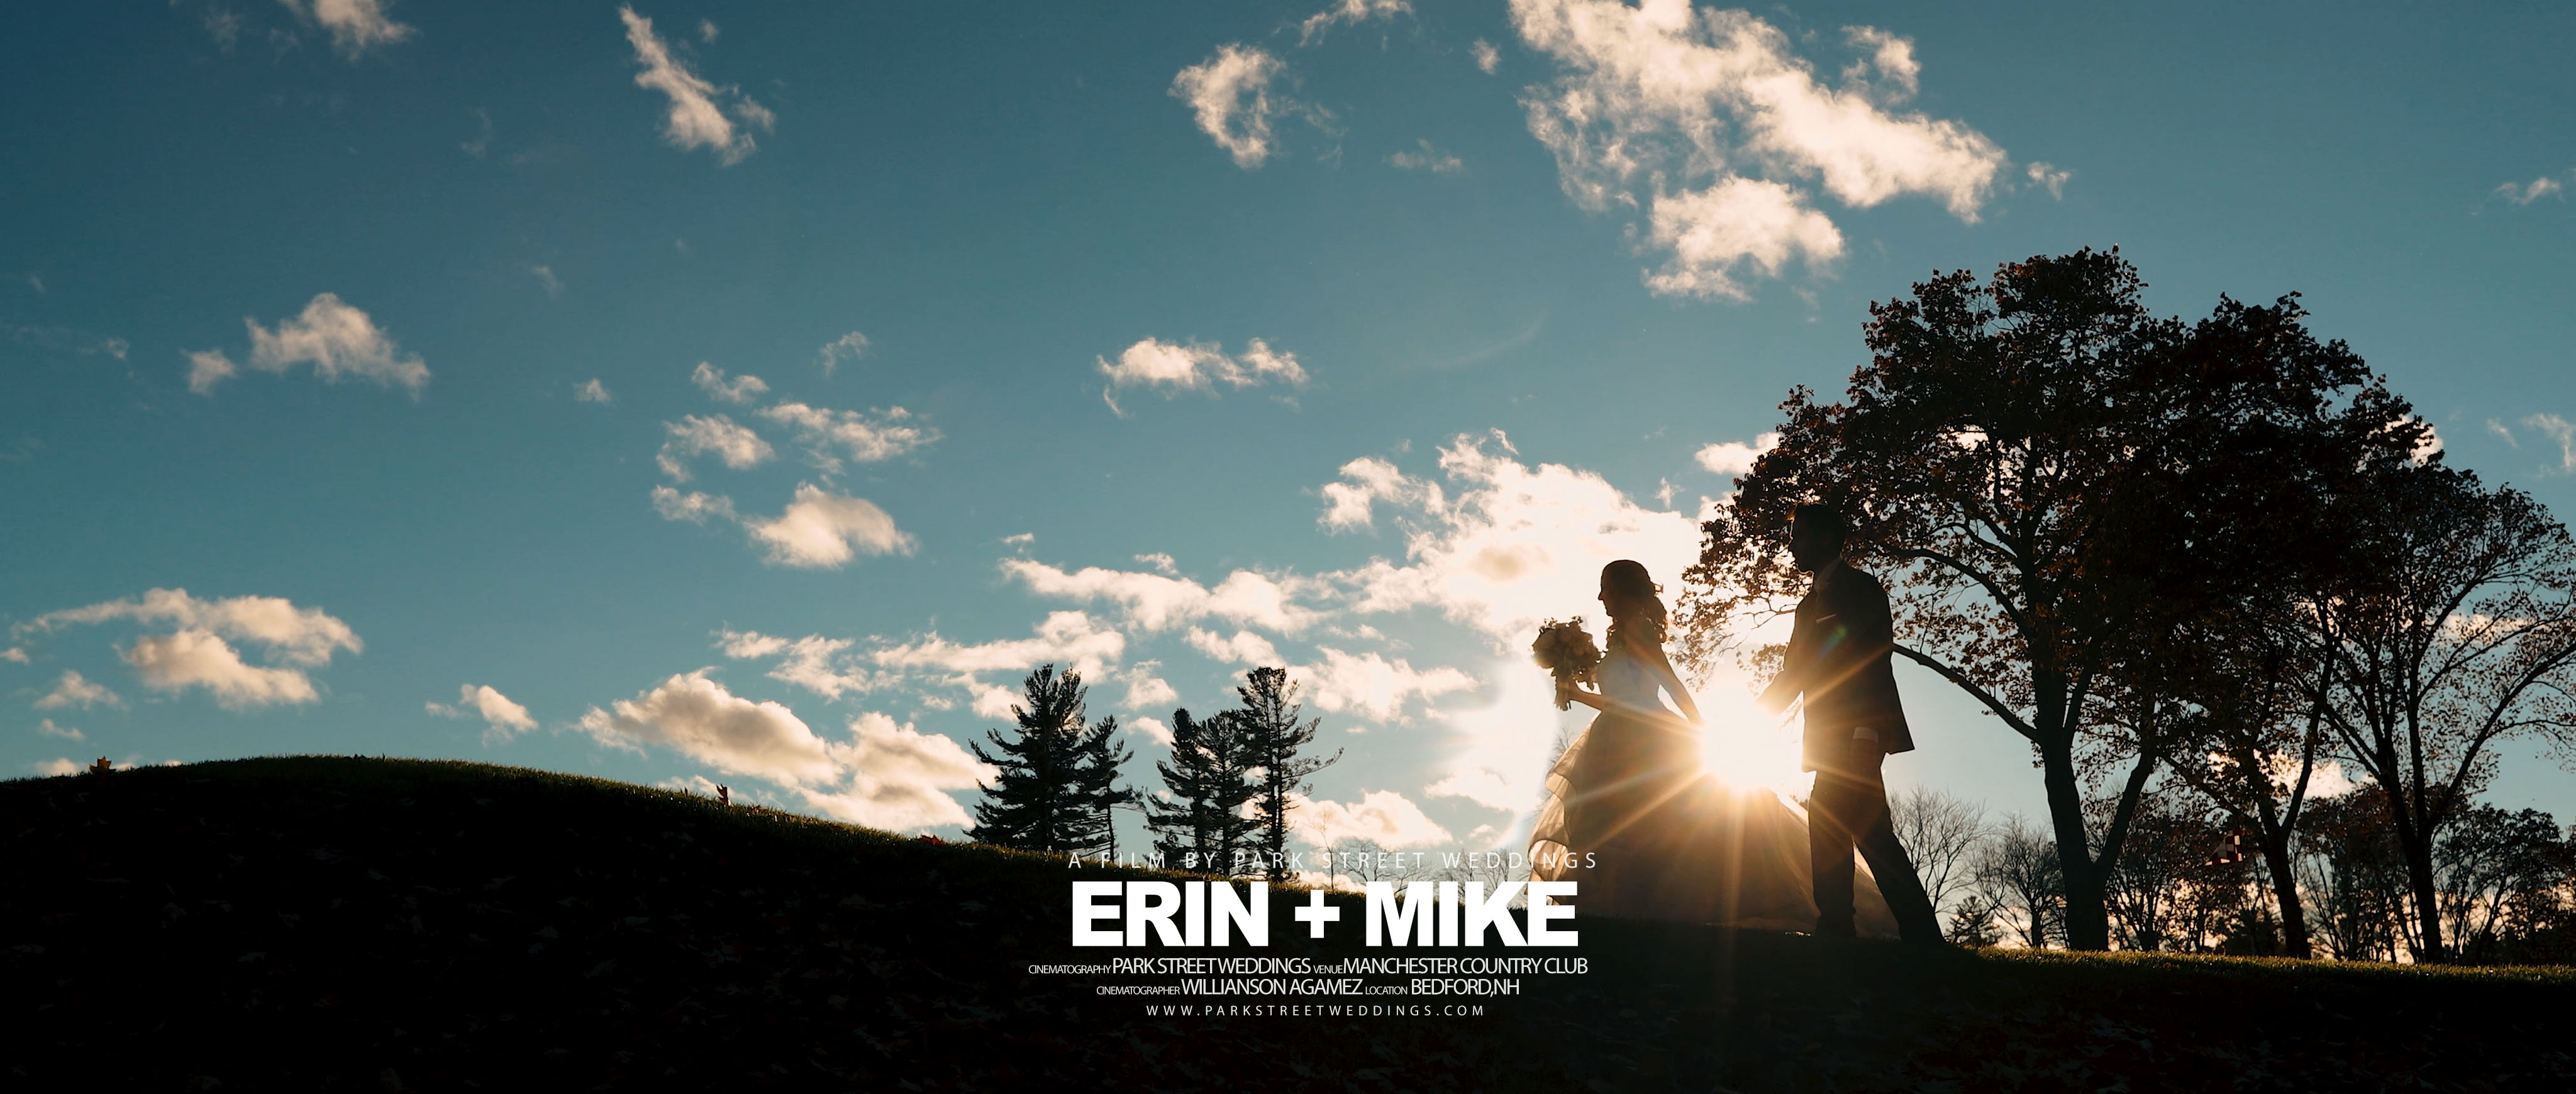 Erin + Mike | Manchester, New Hampshire | Manchester Country Club